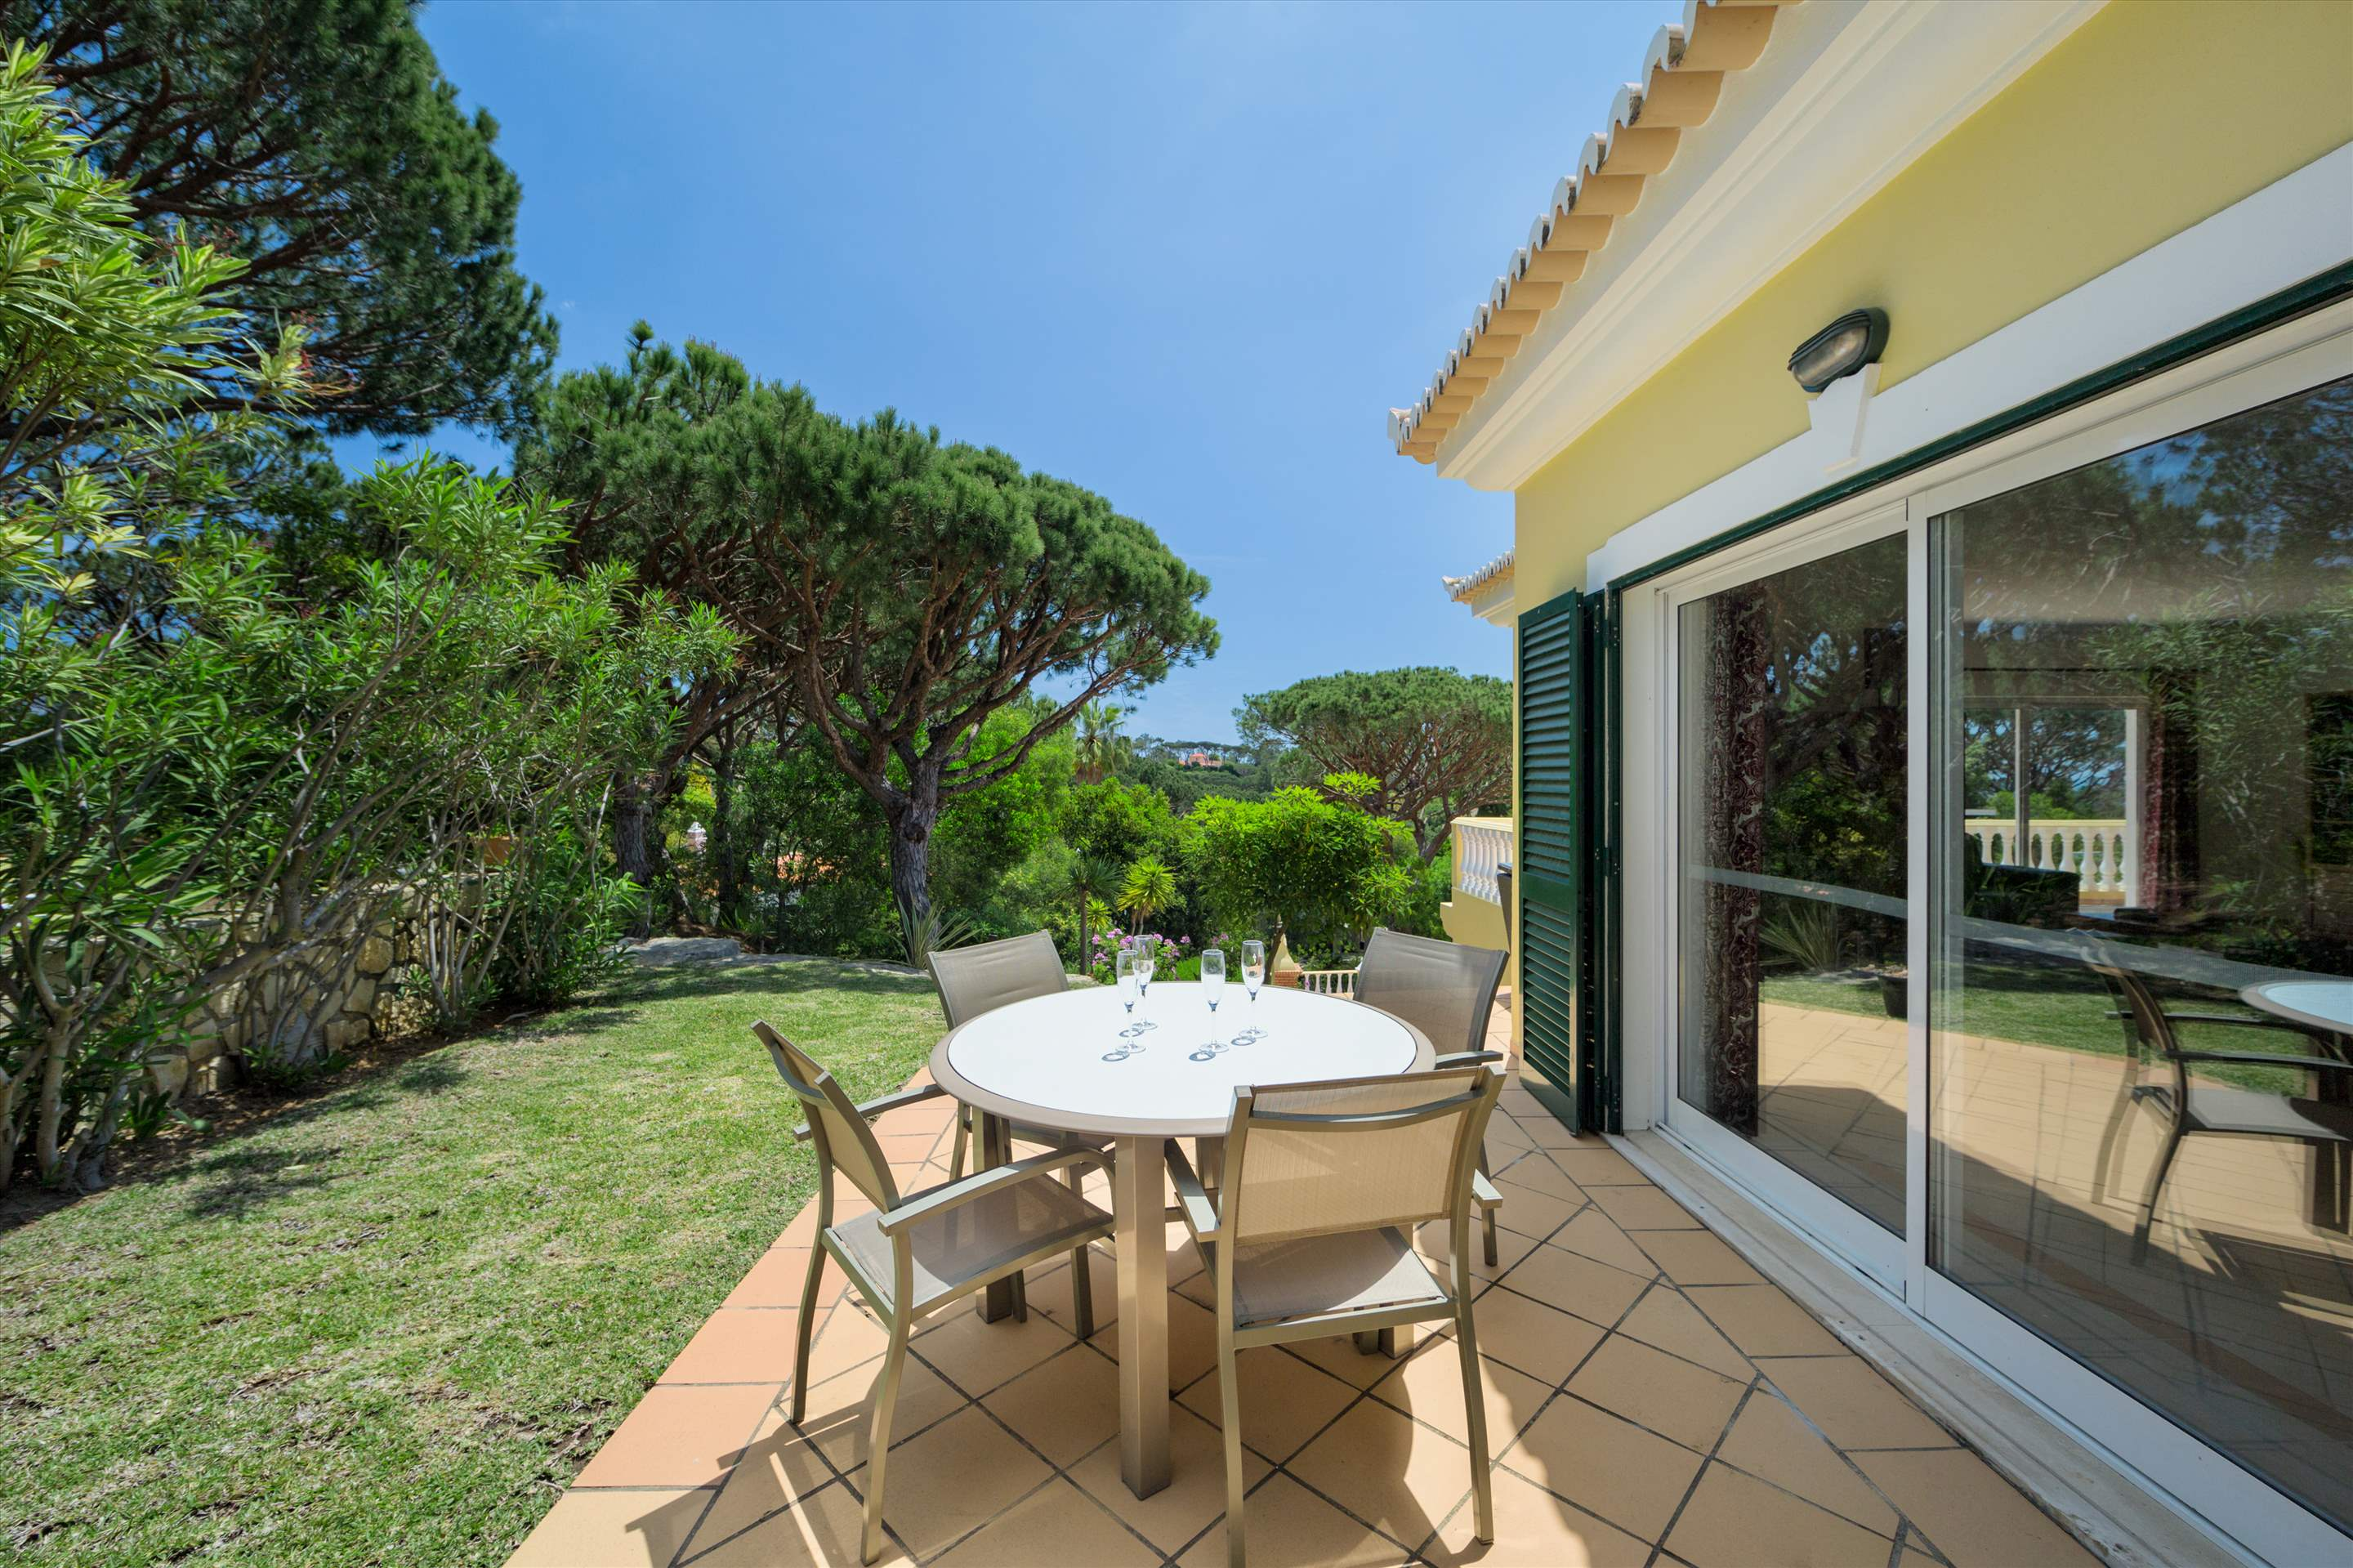 Villa Natasha, 4 bedroom villa in Vale do Lobo, Algarve Photo #11